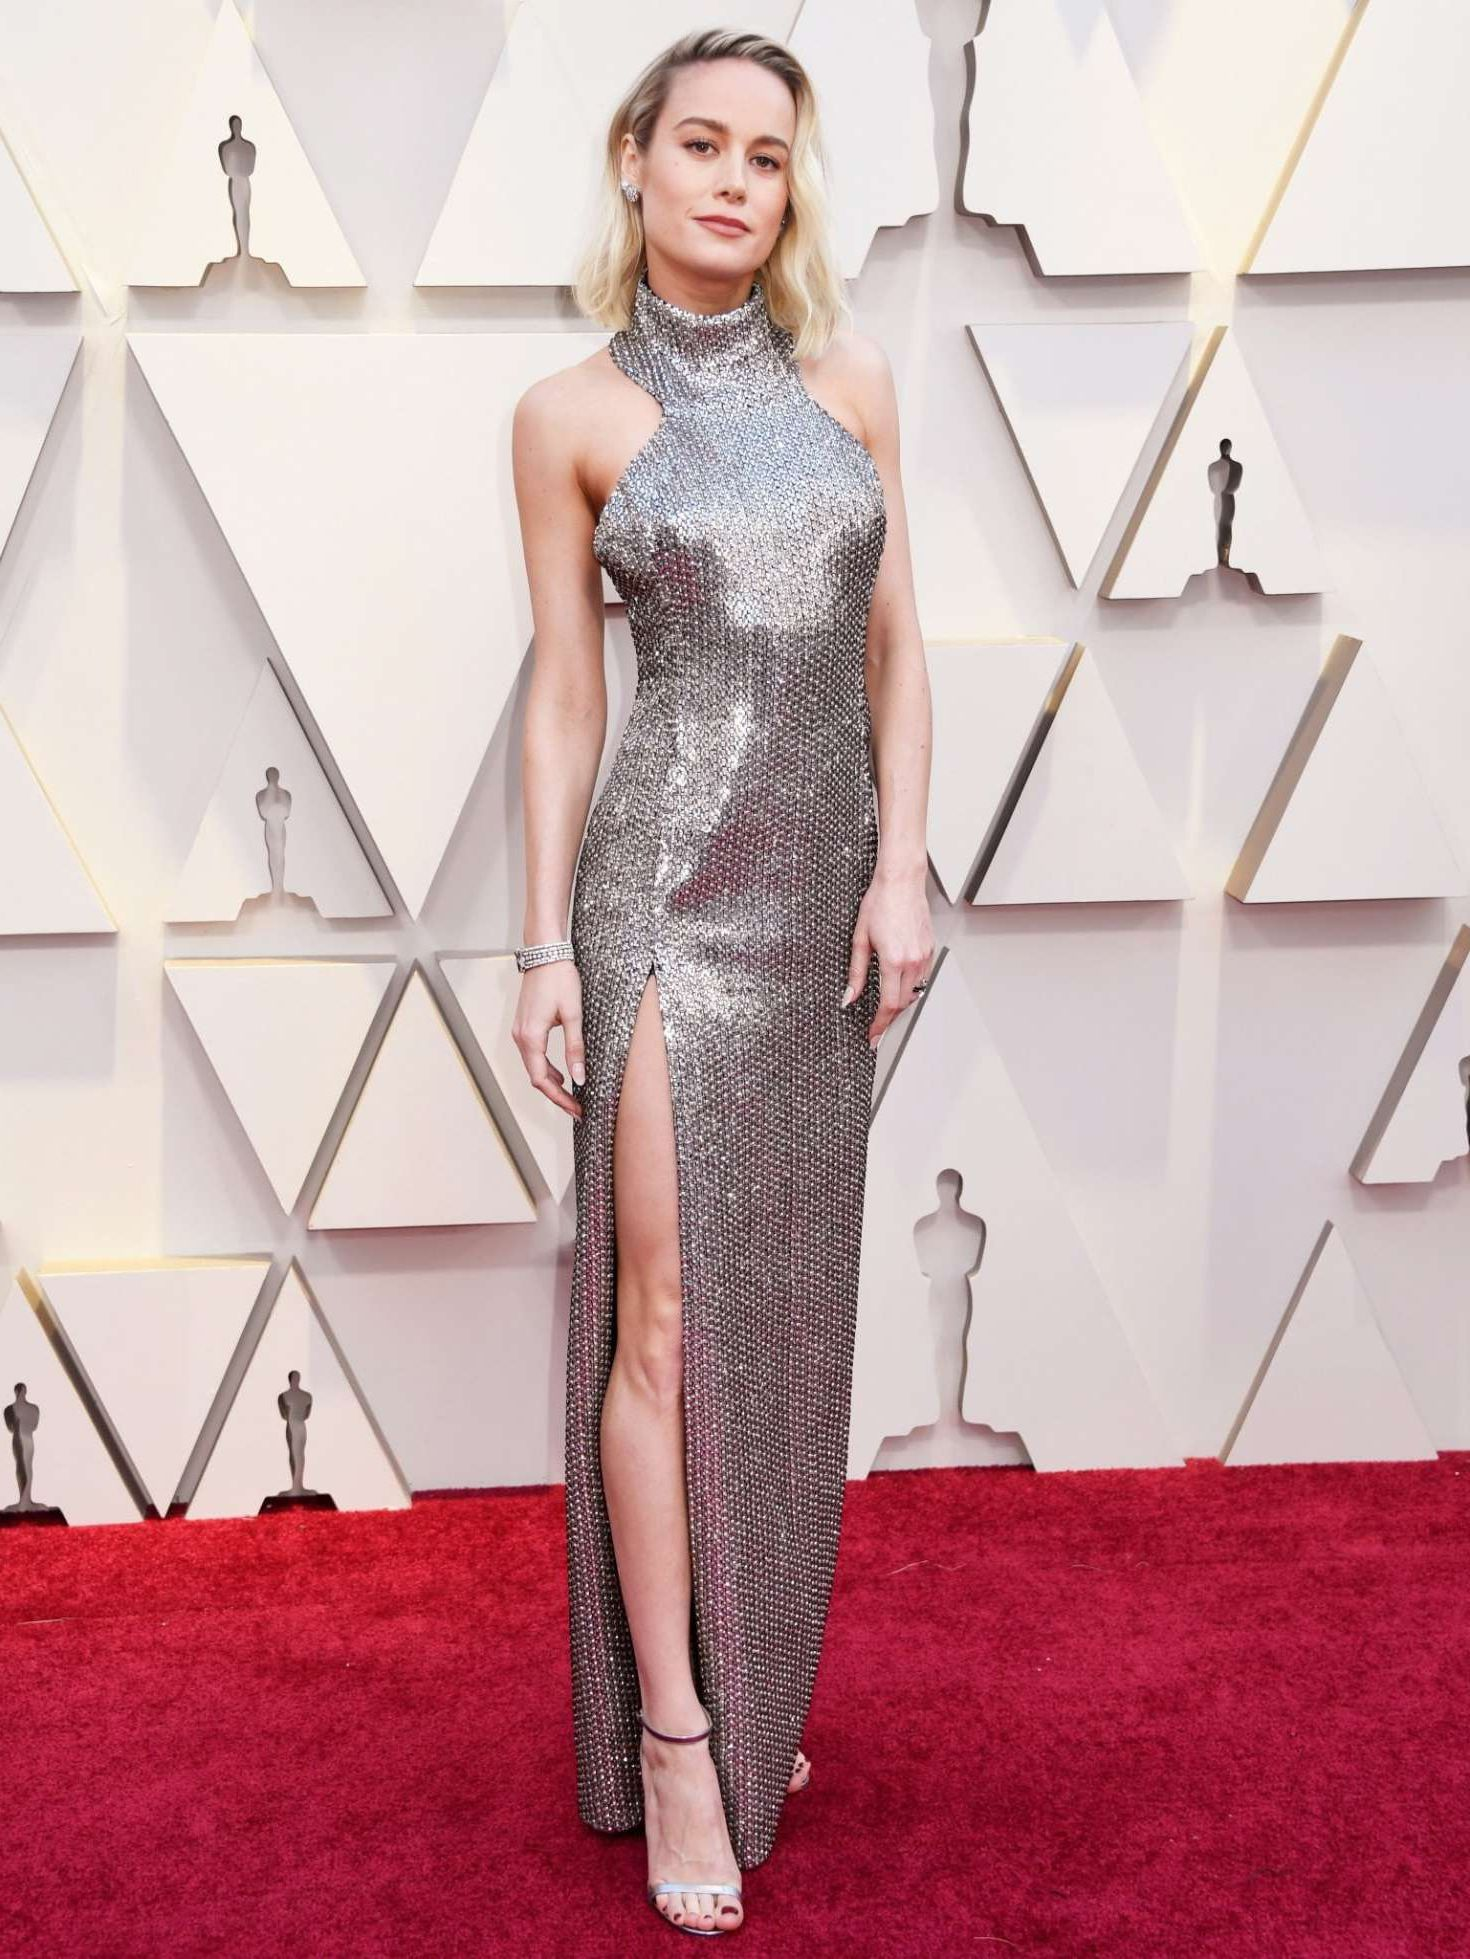 amazing actress Brie larson at the Oscars in Los Angeles, 2019